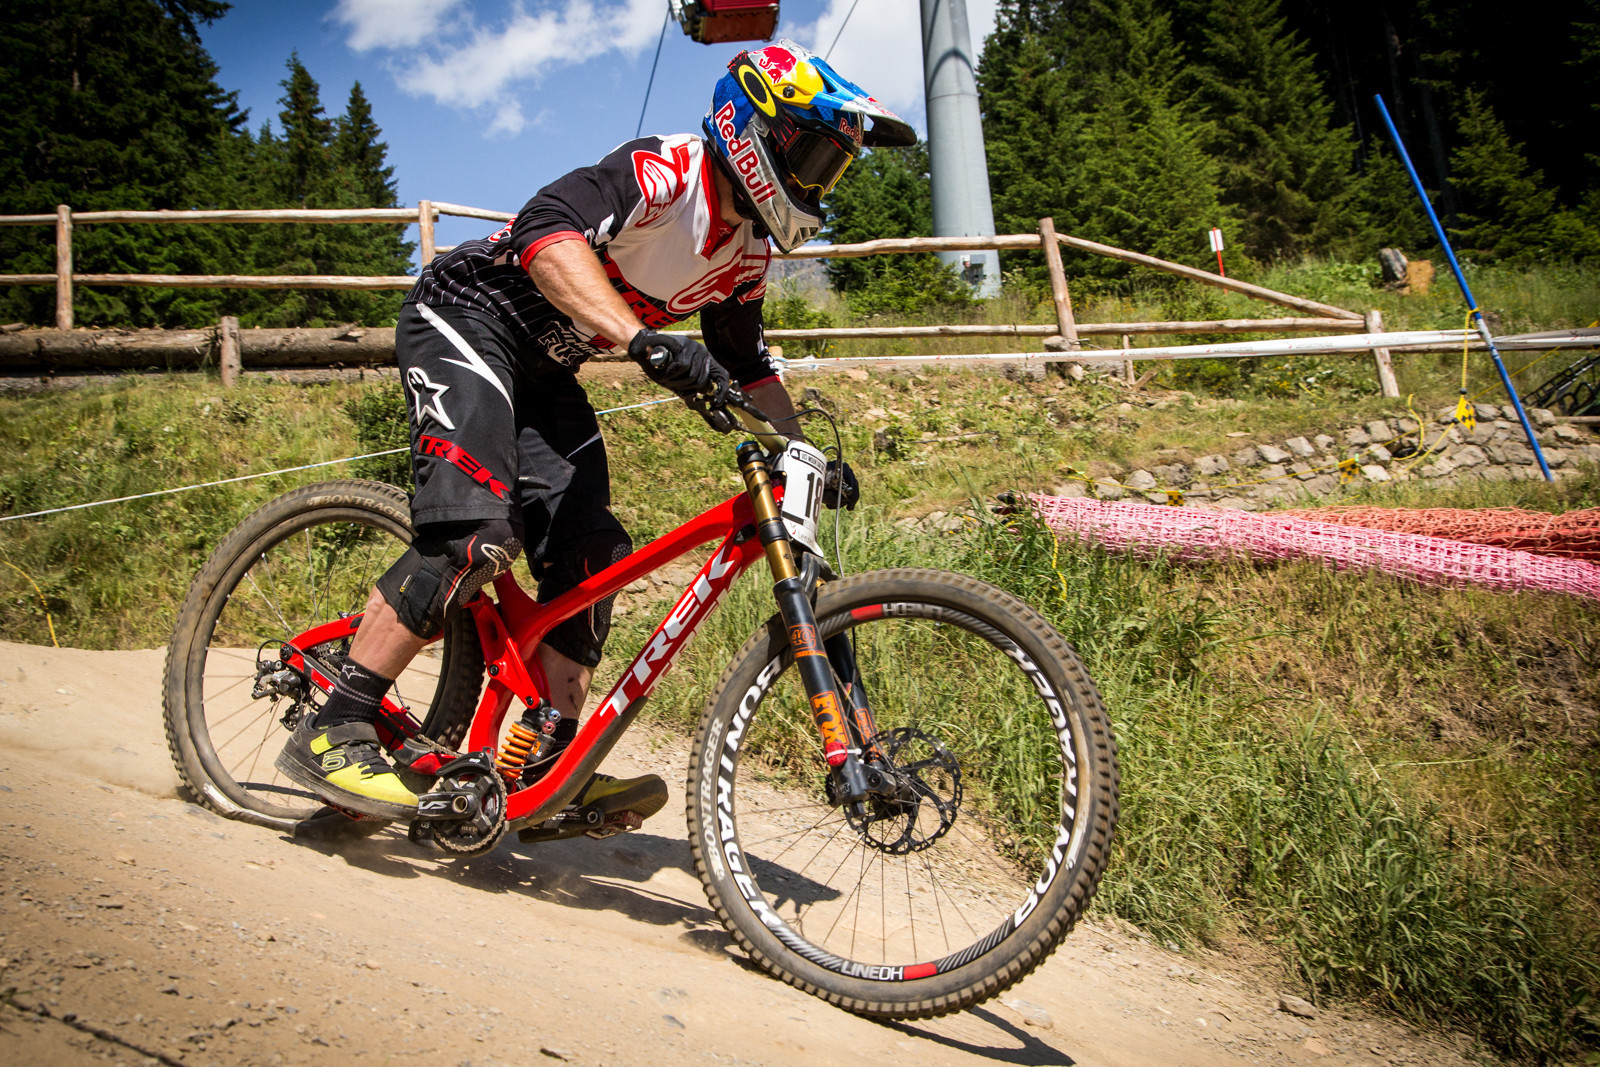 Brook MacDonald from Vital's G-Out Project gallery at the 2015 Lenzerheide World Cup. FTD is in there, but none of us knew.